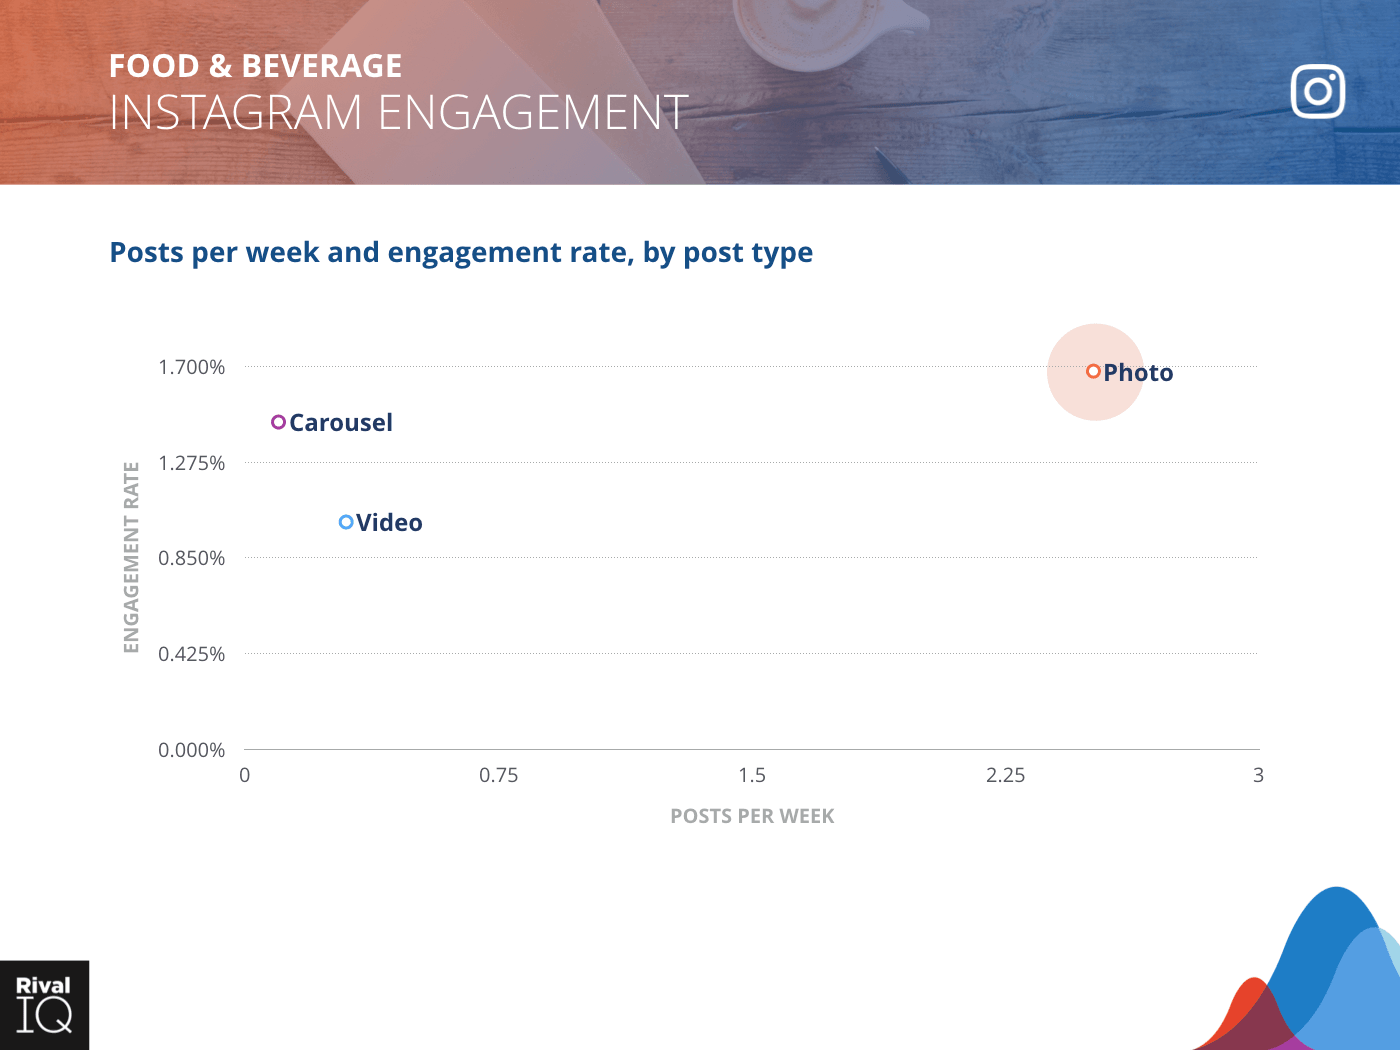 Food & Beverage Industry: scatter graph, average post per week by type and engagement rate on Instagram